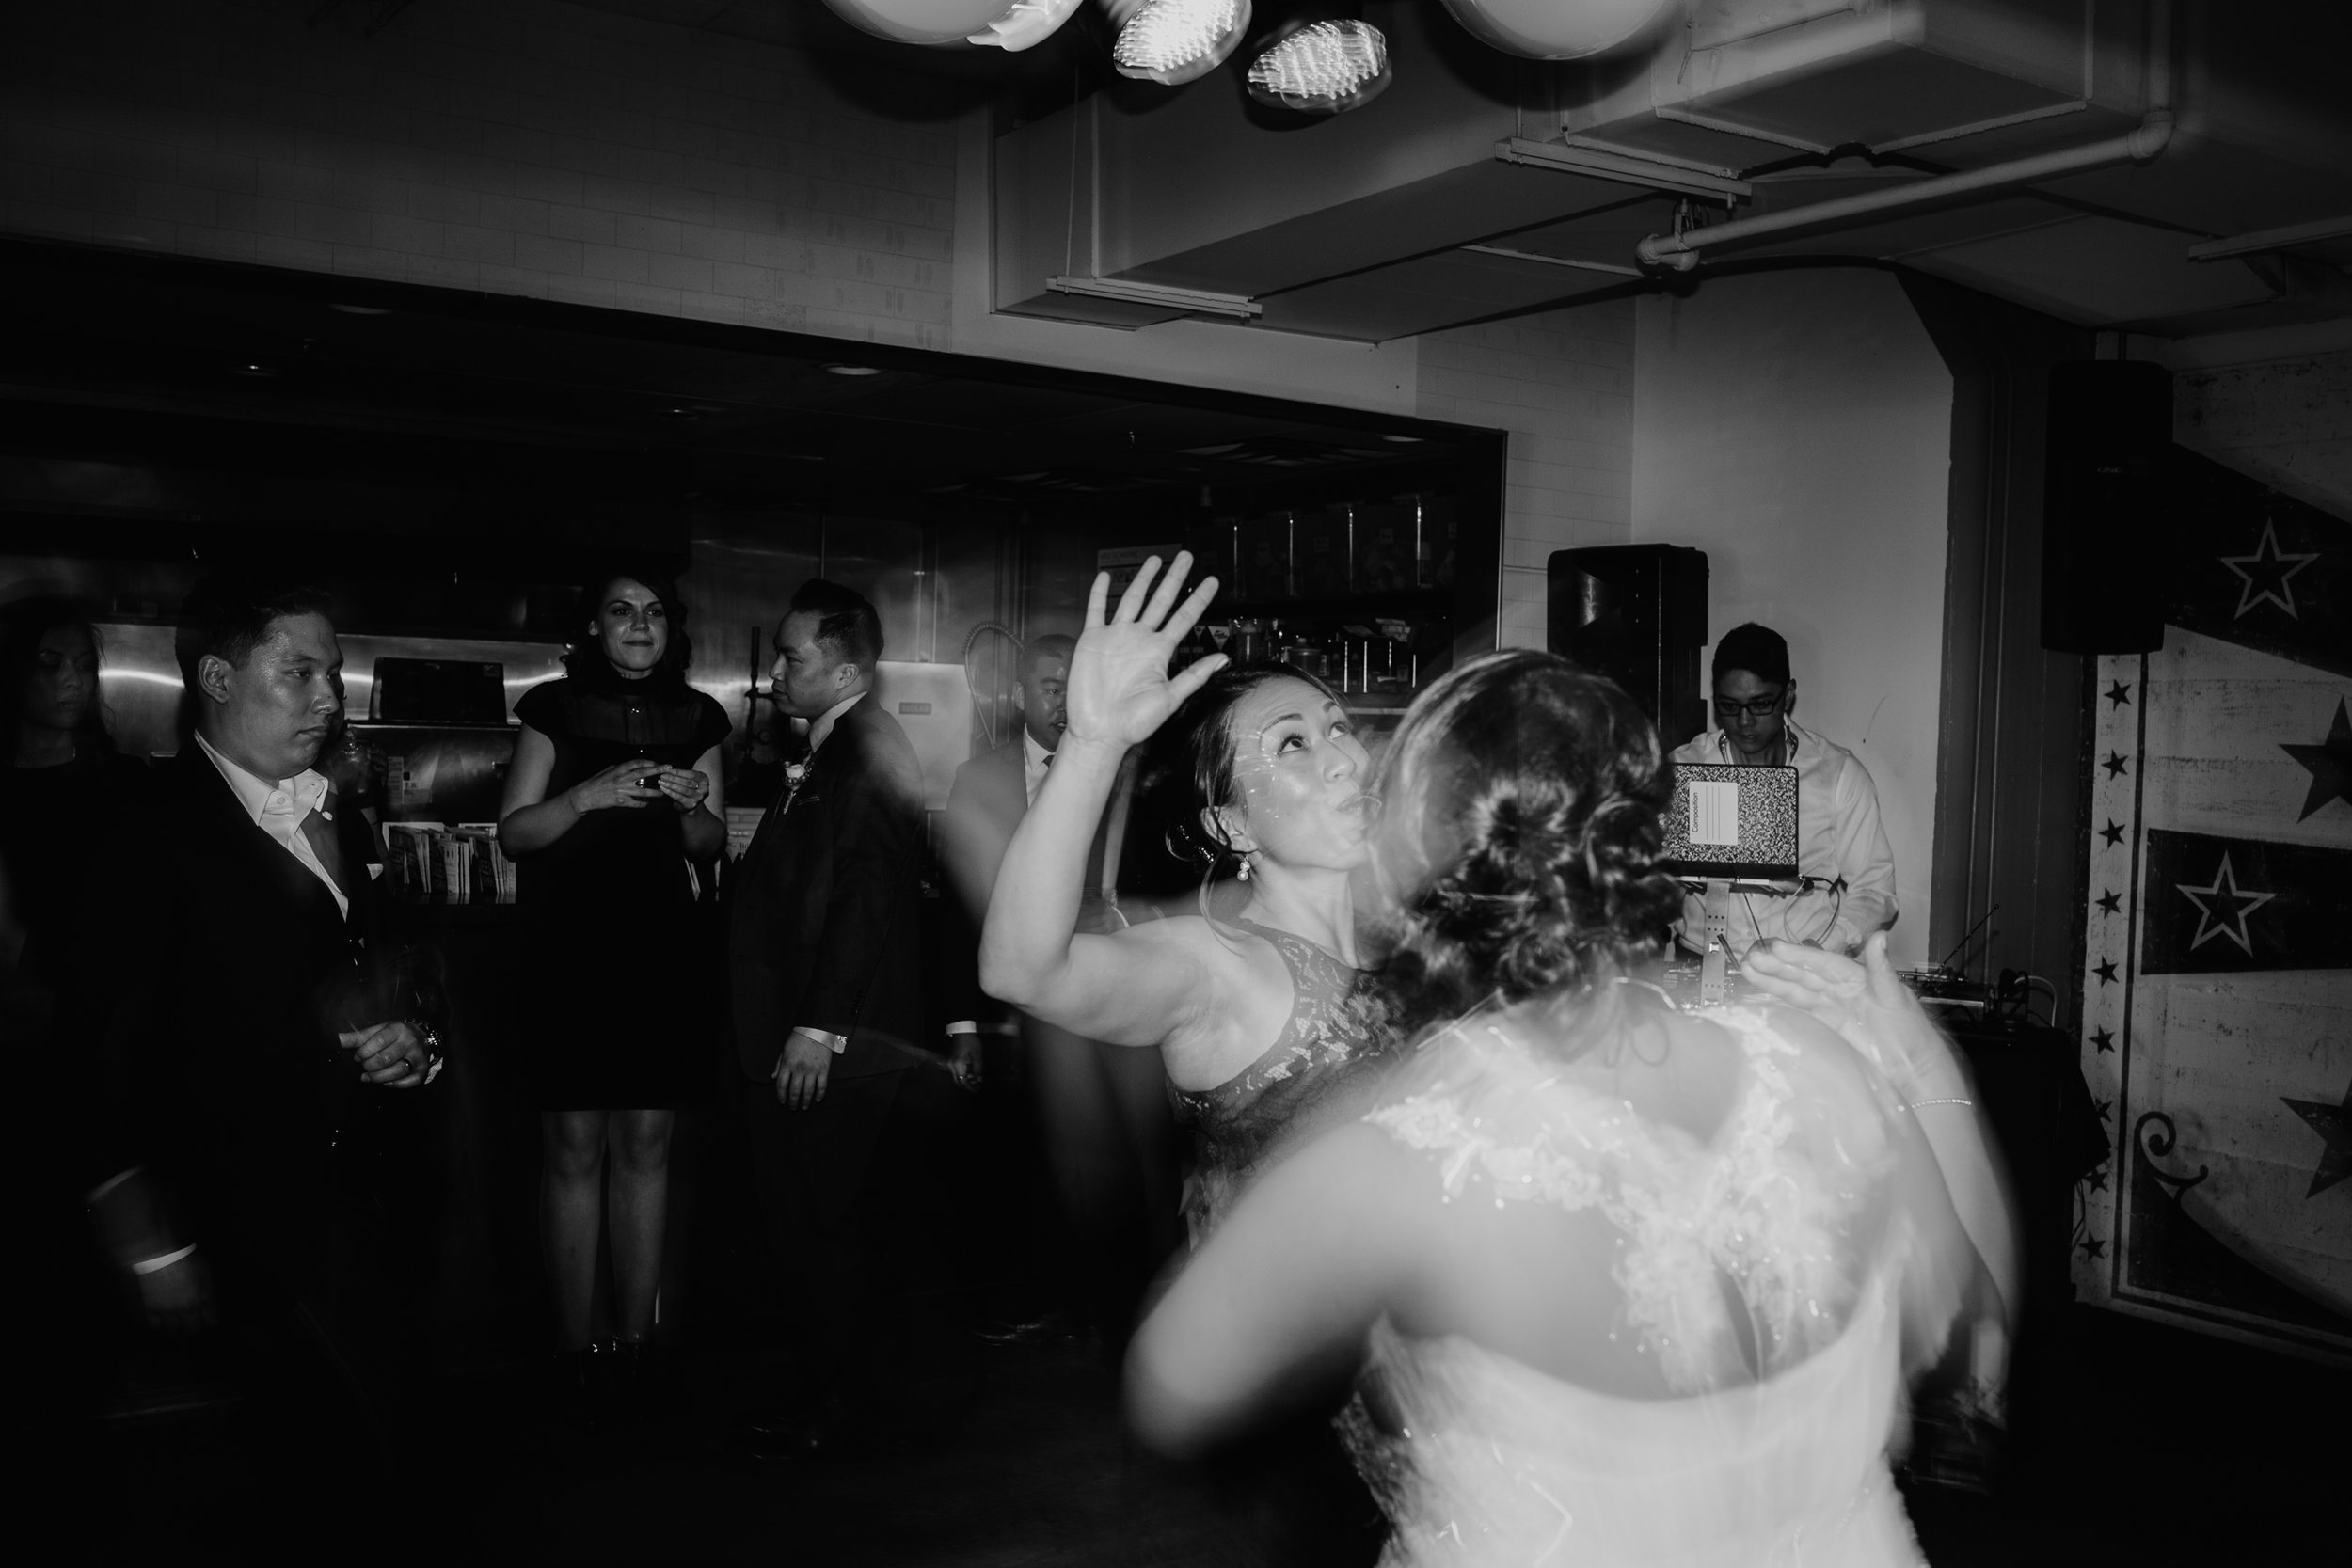 calgary-wedding-photographer-90.jpg